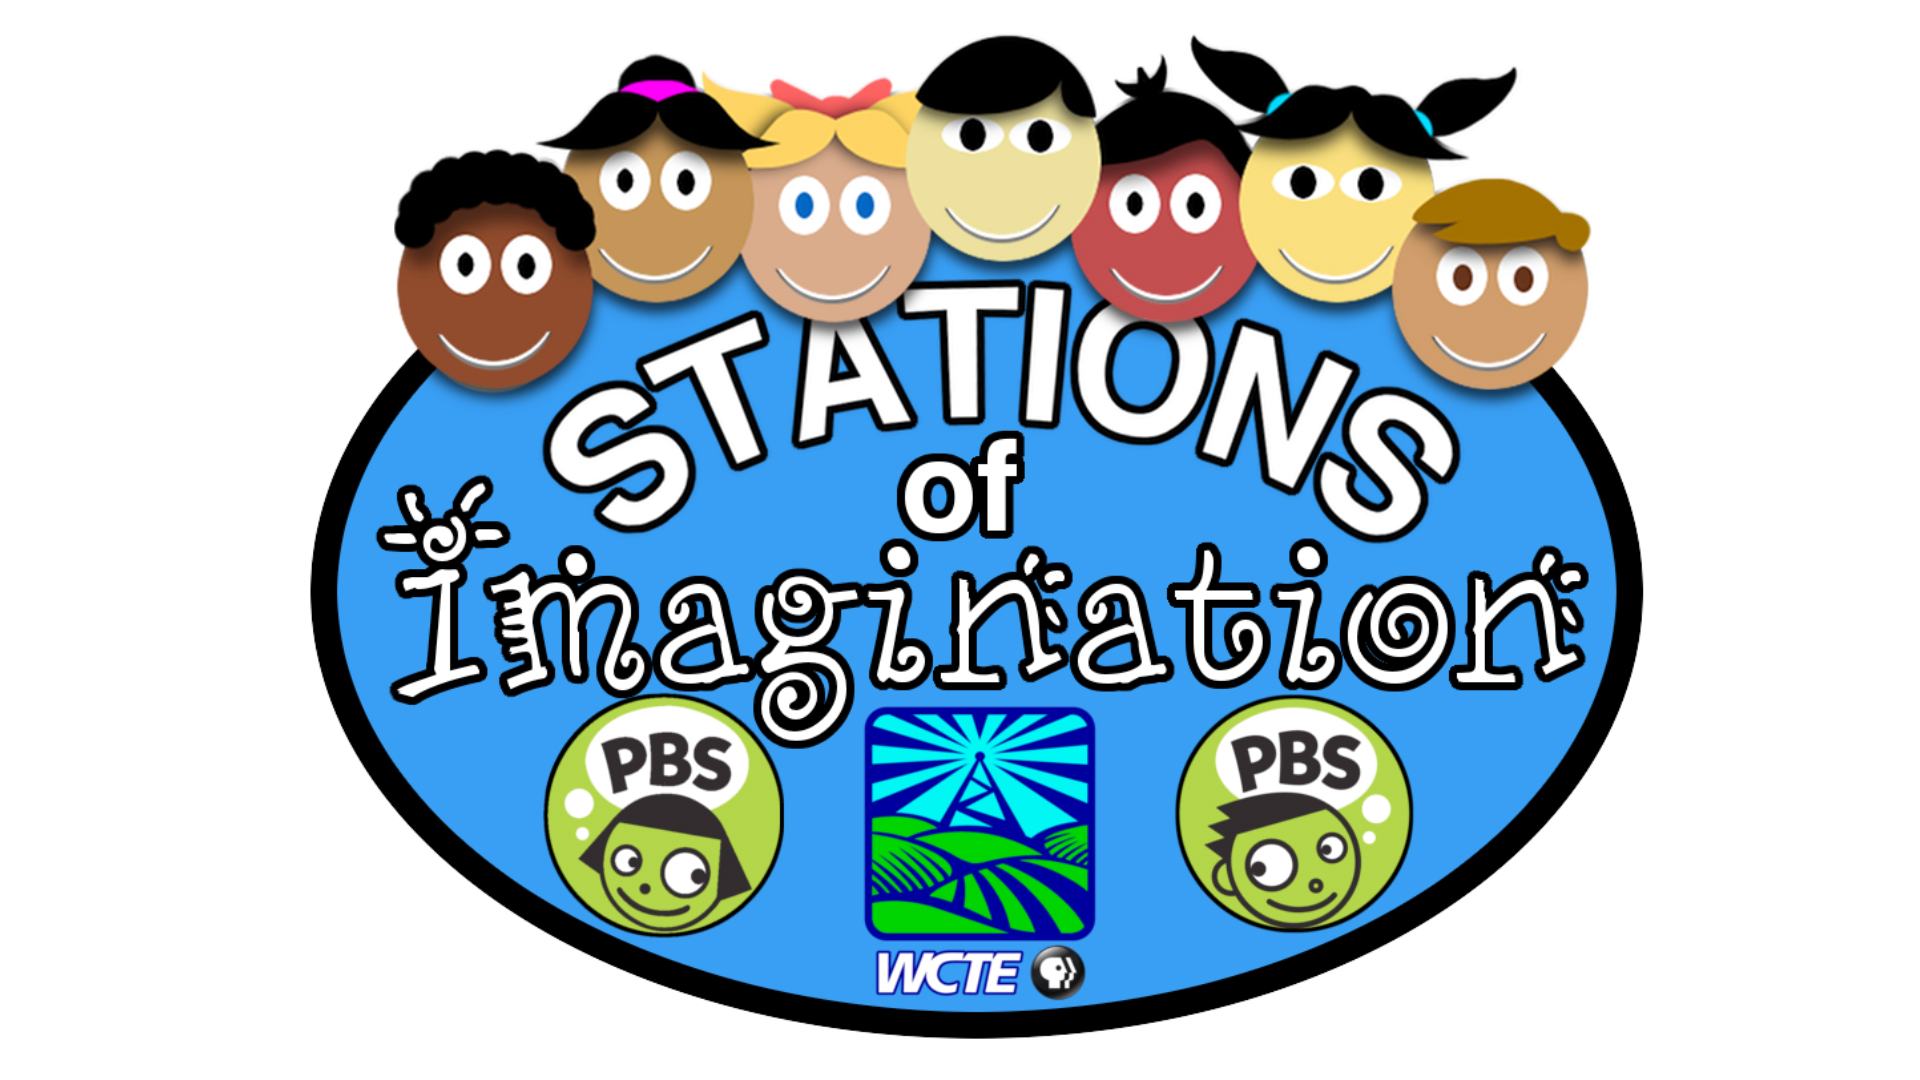 2016 Stations of Imagination